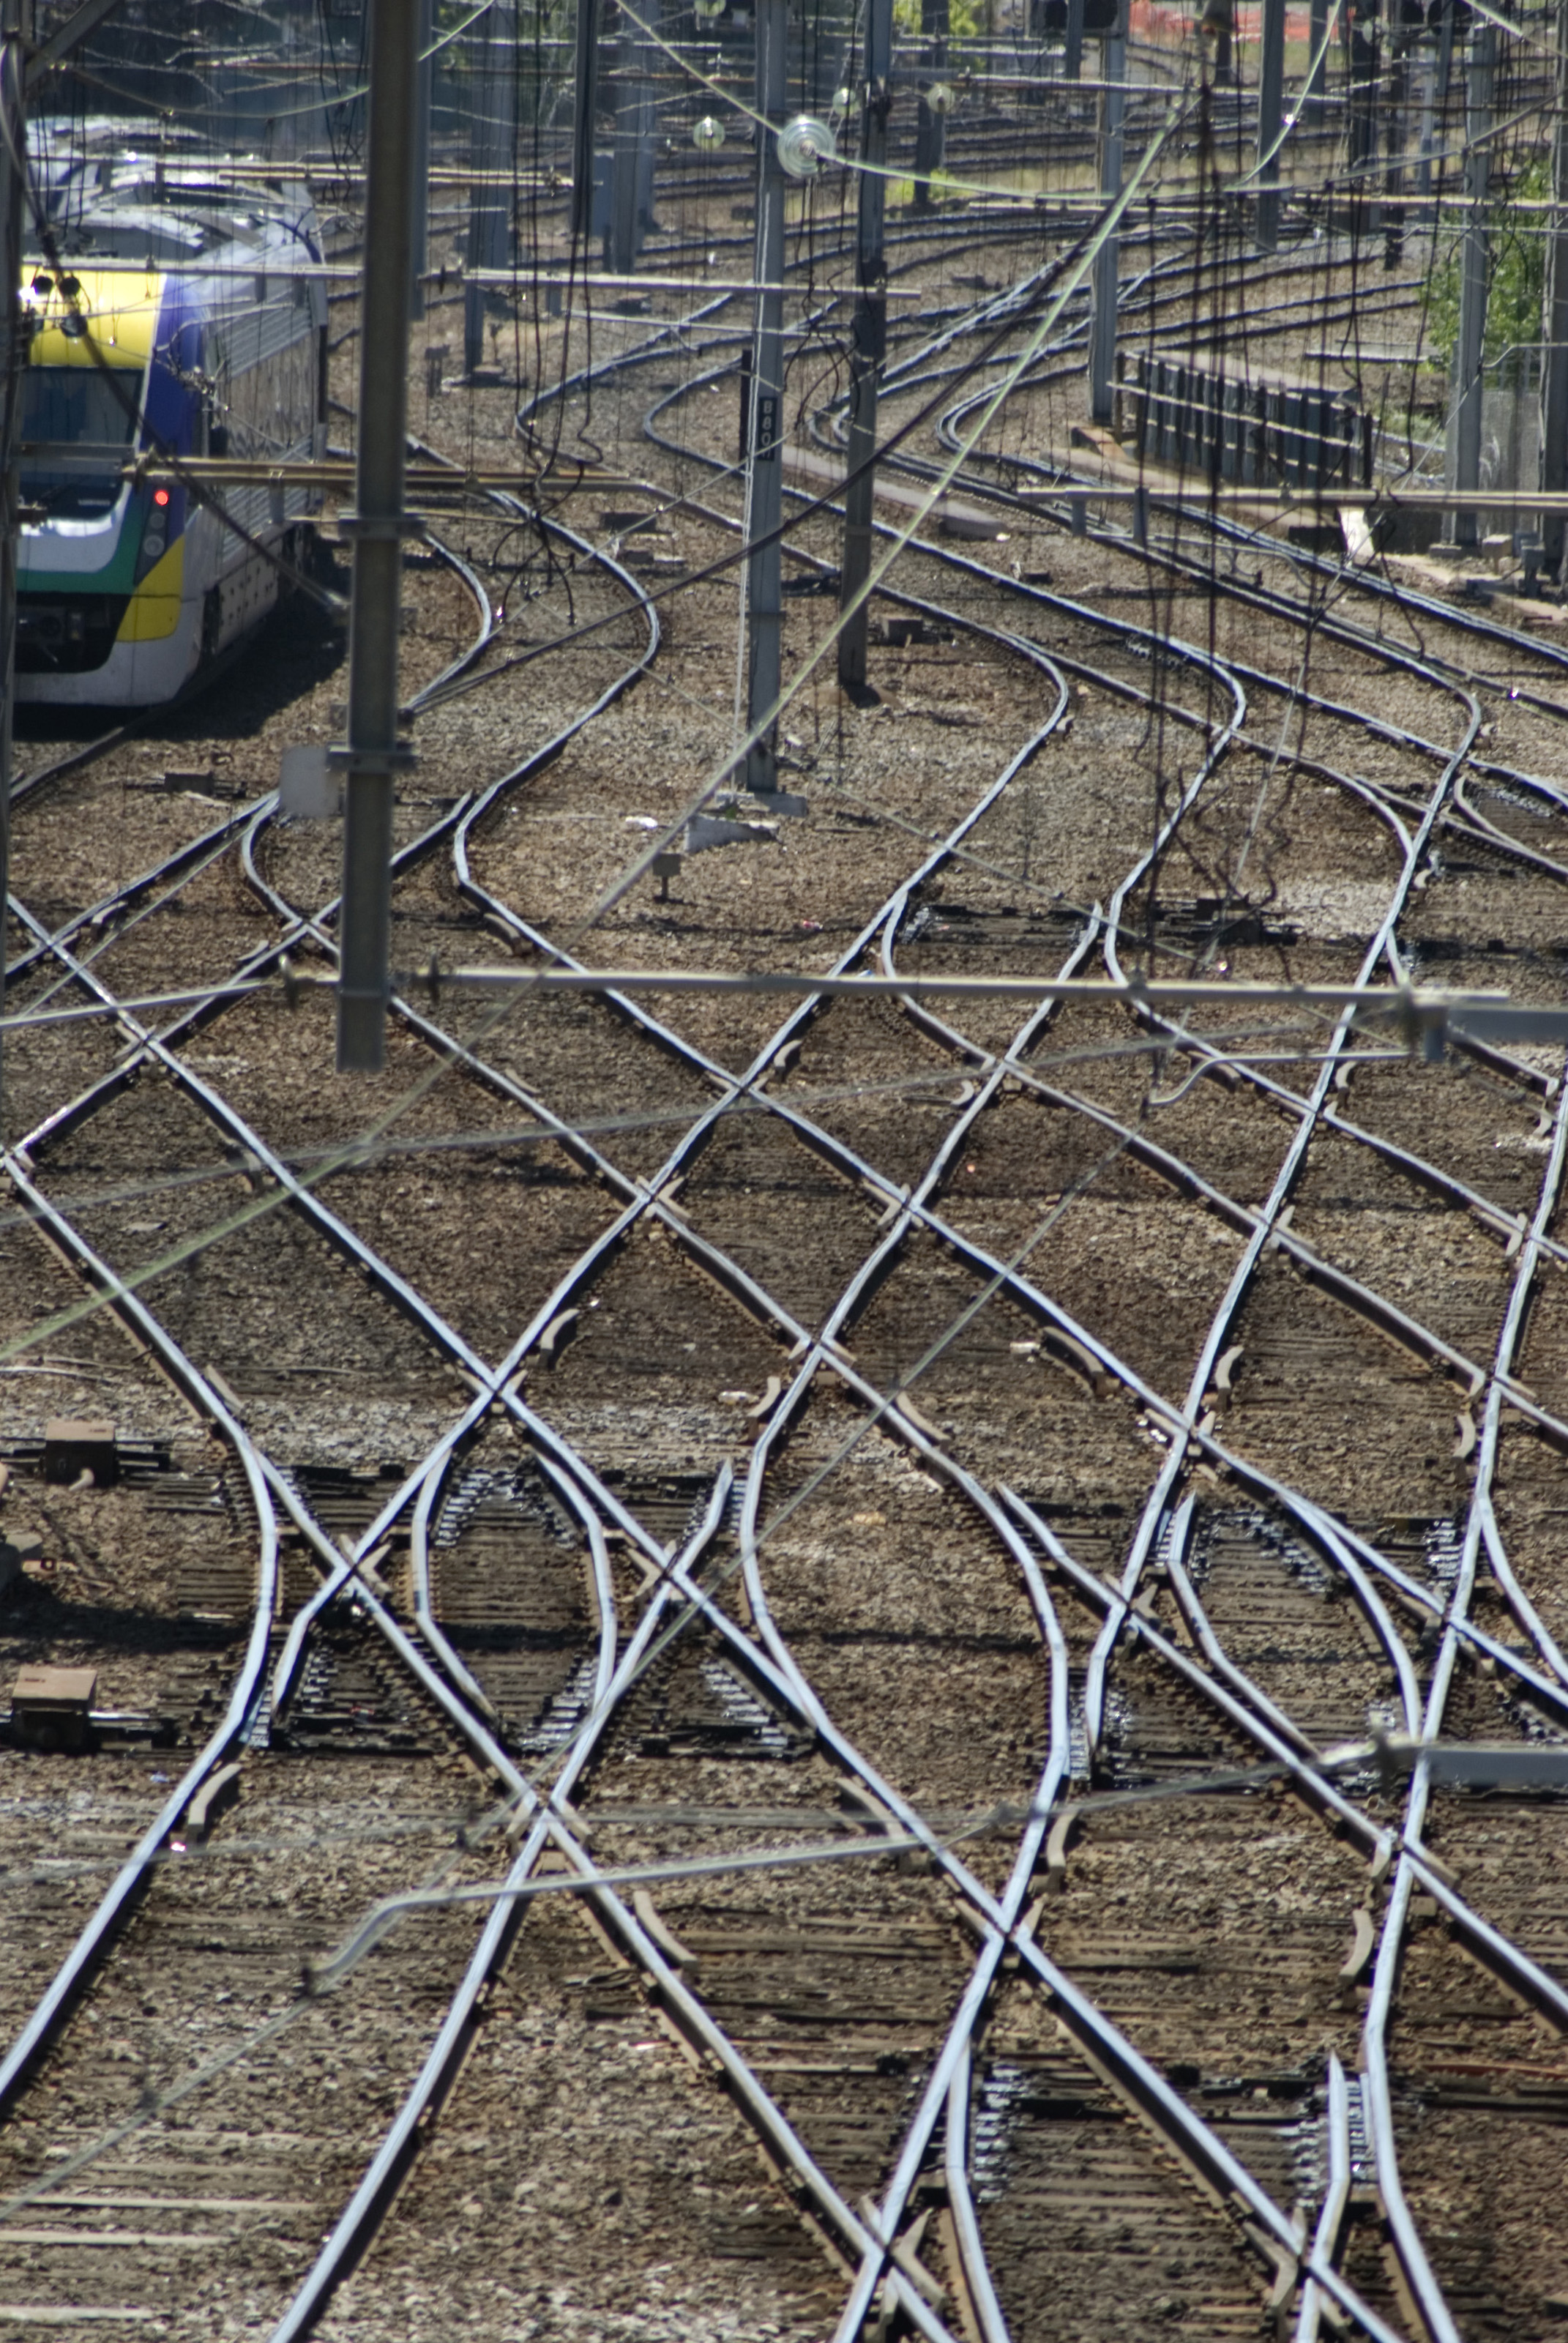 Crisscrossing Railway Lines 3914 Stockarch Free Stock Photos